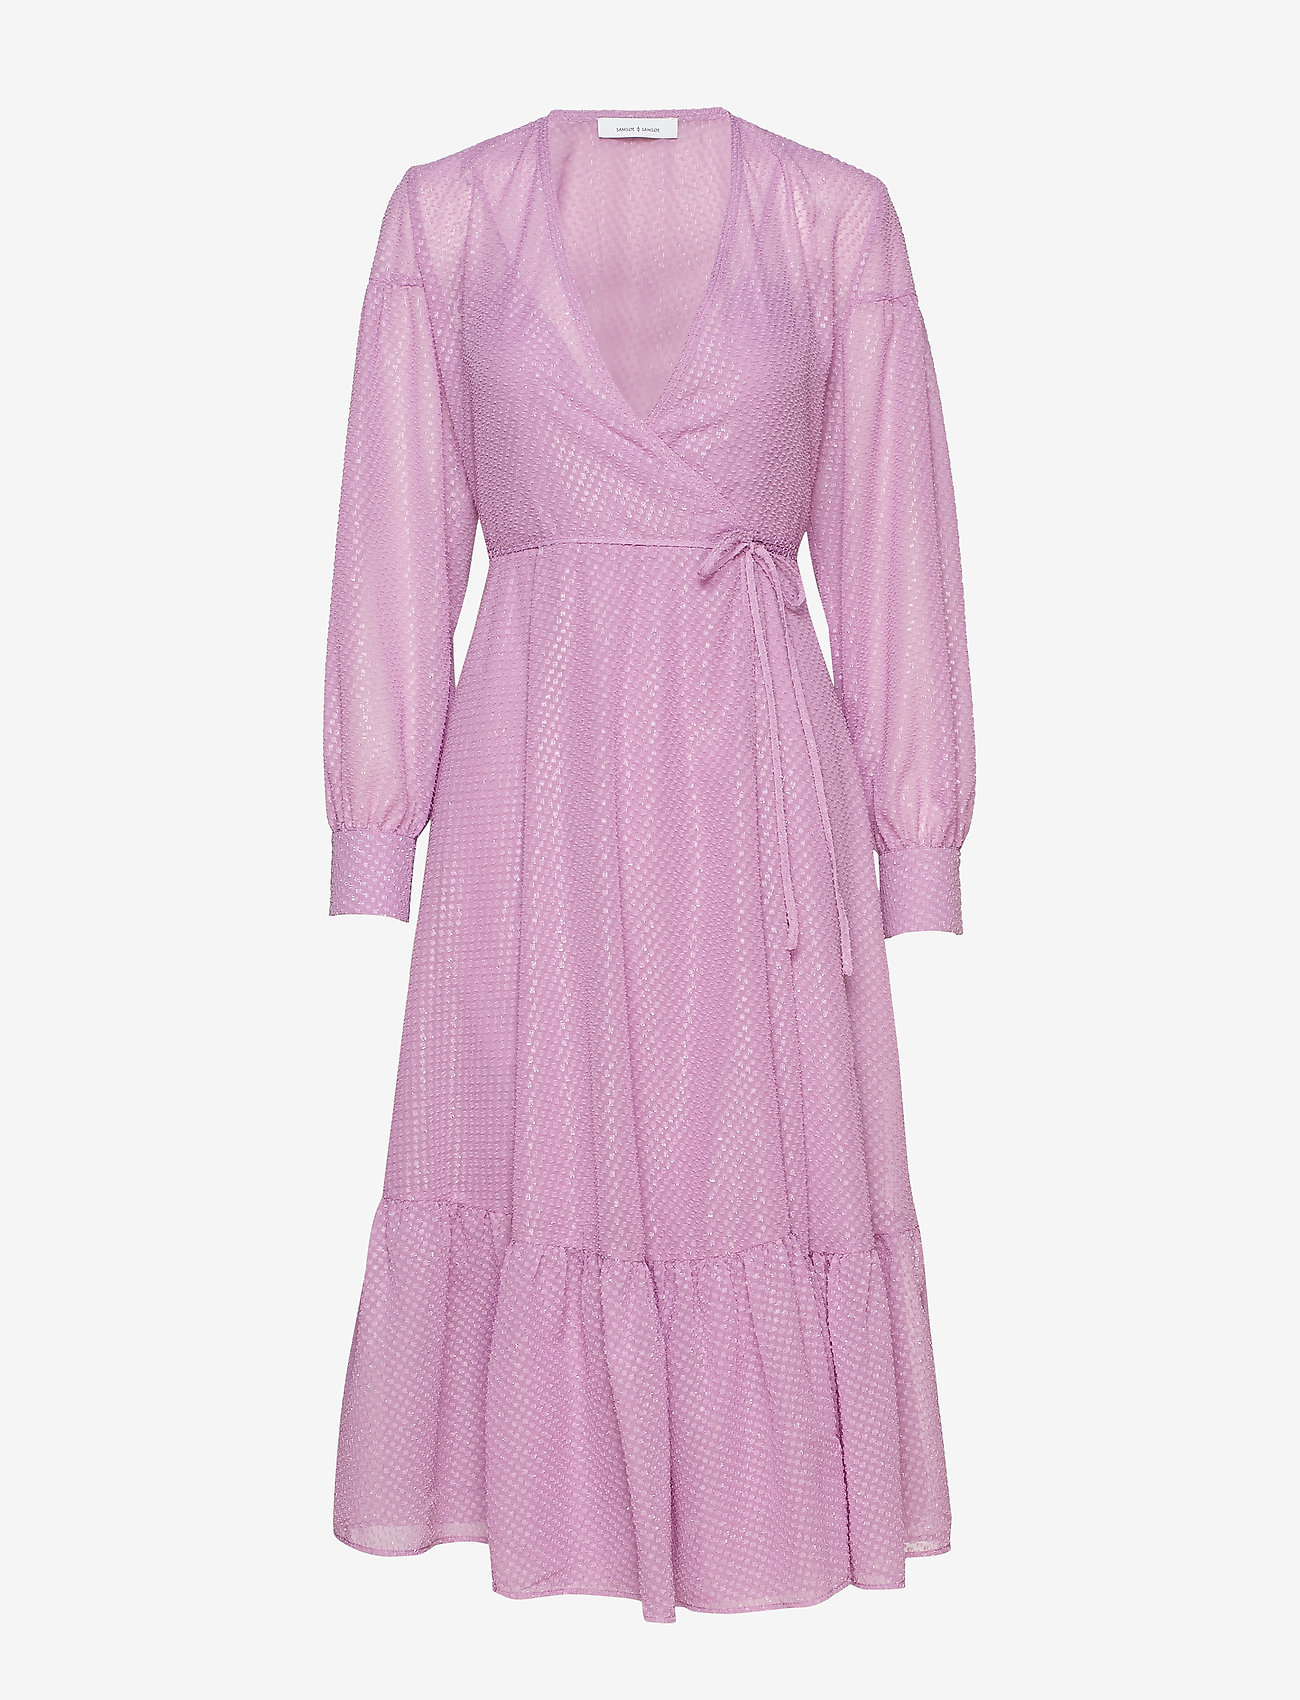 Samsøe Samsøe - Tulip long dress 11512 - omlottklänning - languid lavender - 0